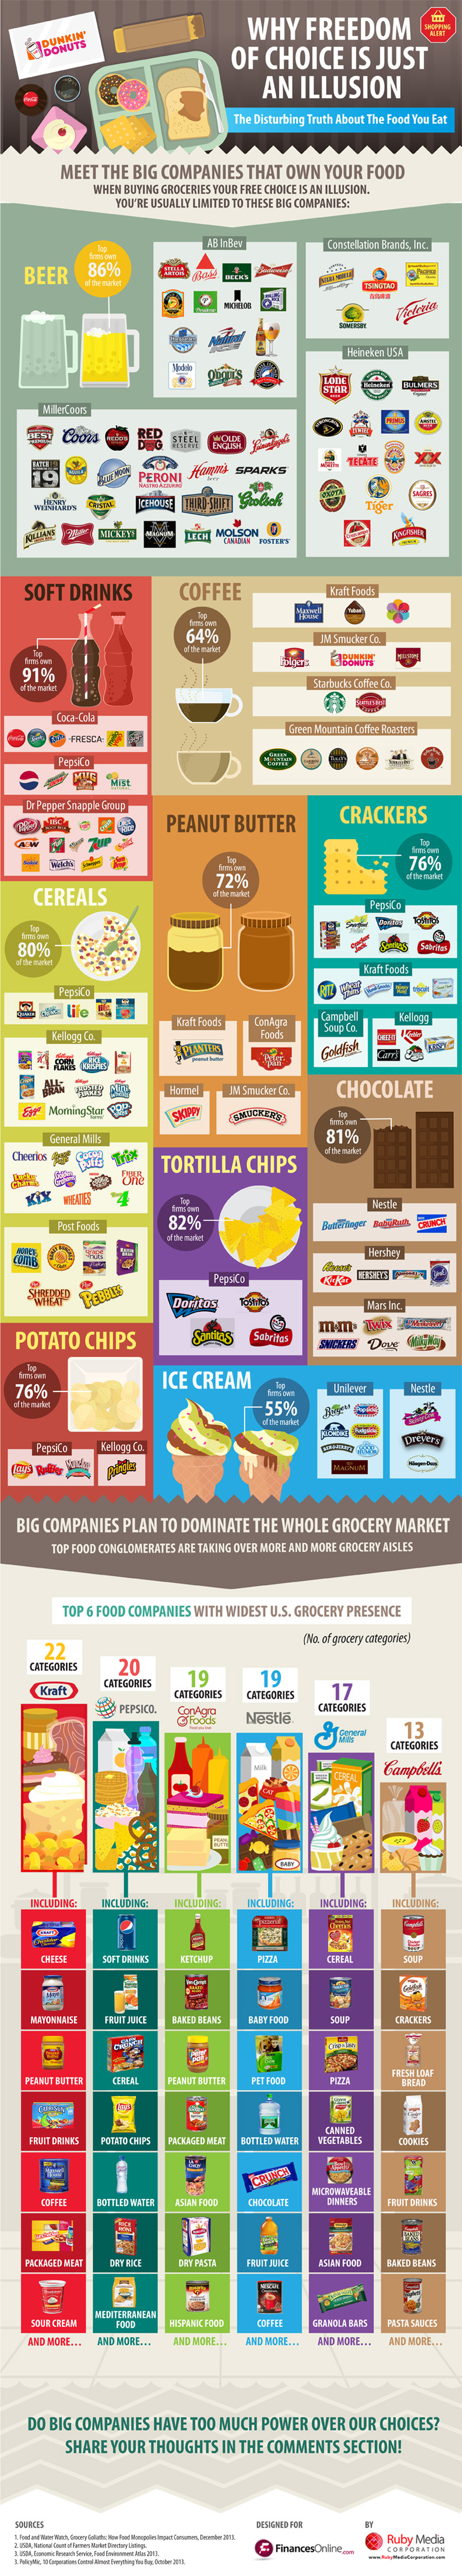 Food Conglomerates_Infographic_Final 2